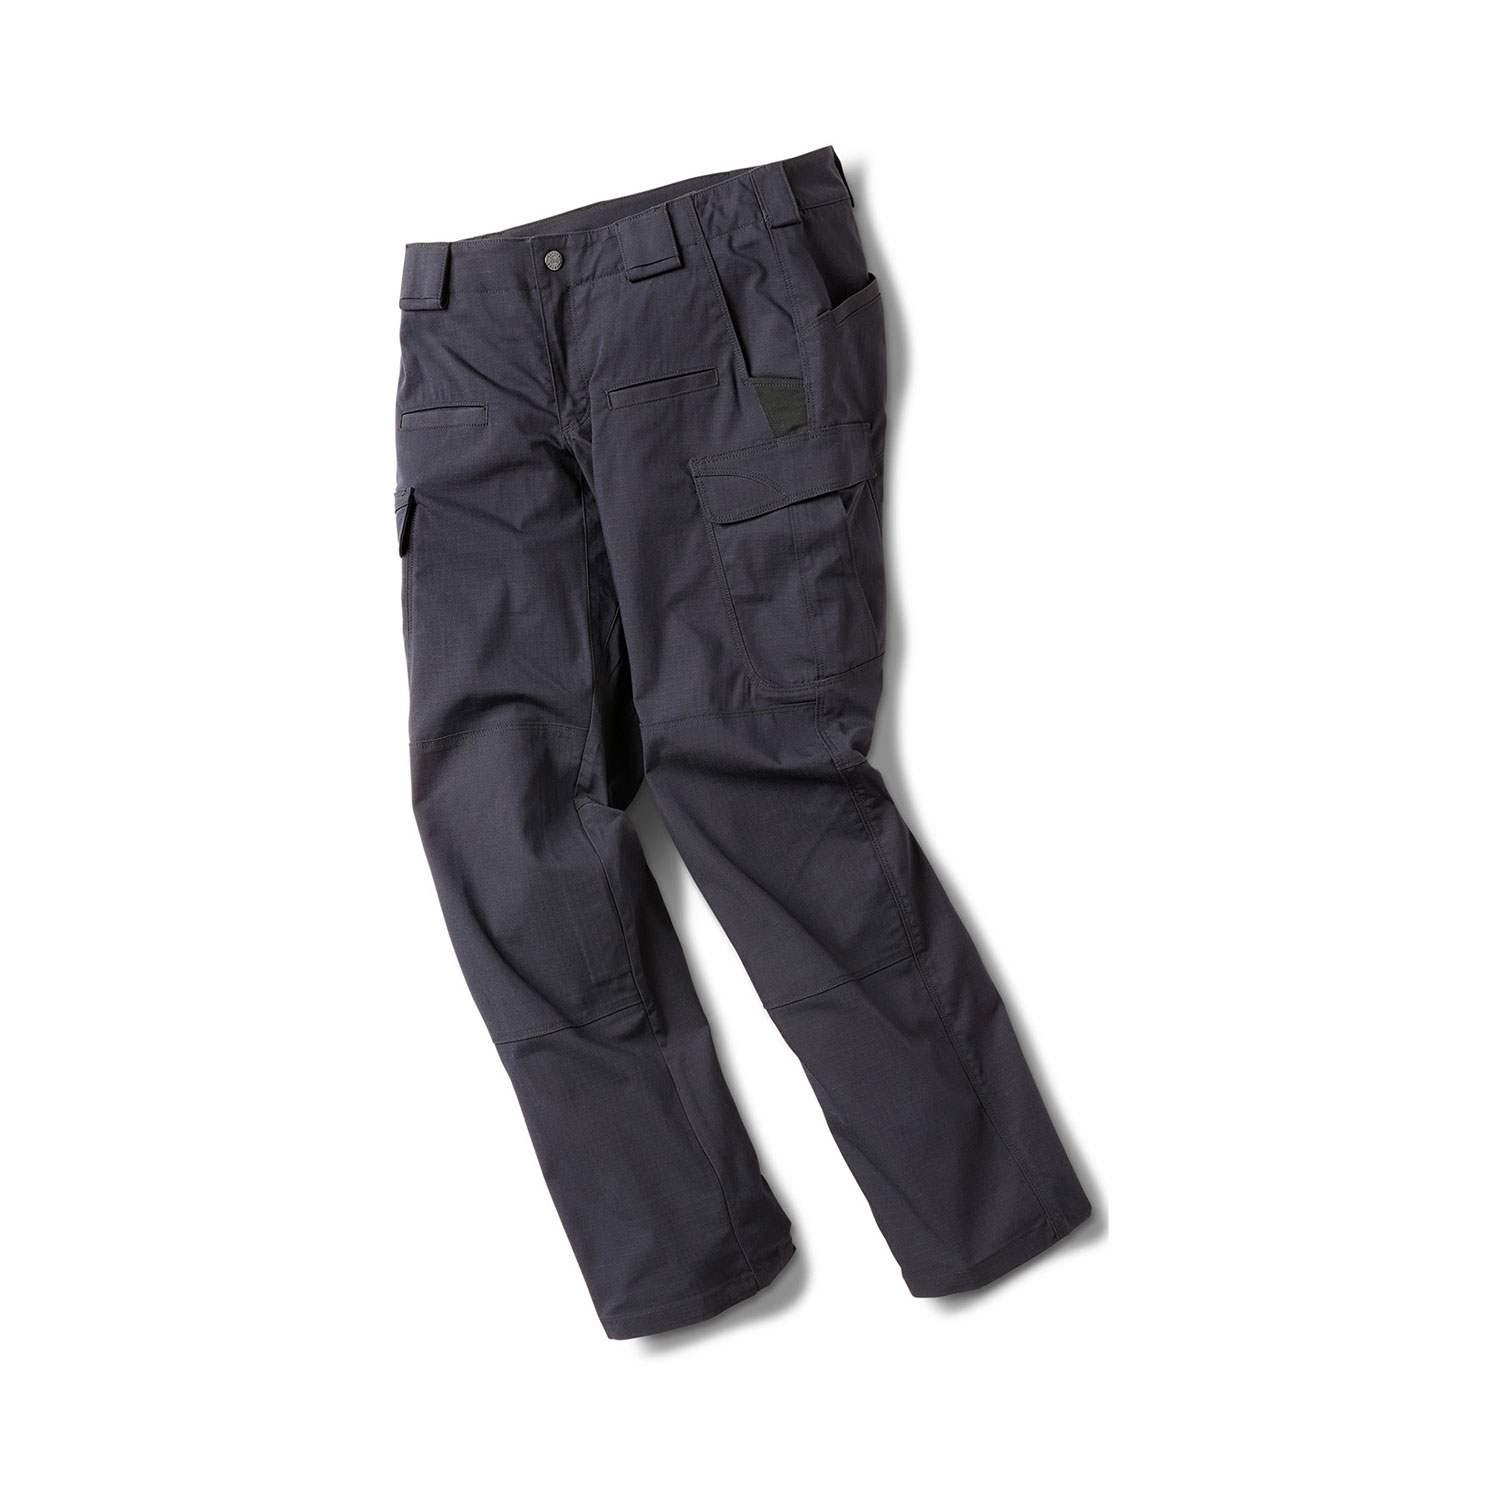 5.11 Tactical Men's NYPD Ripstop Stryke Pant